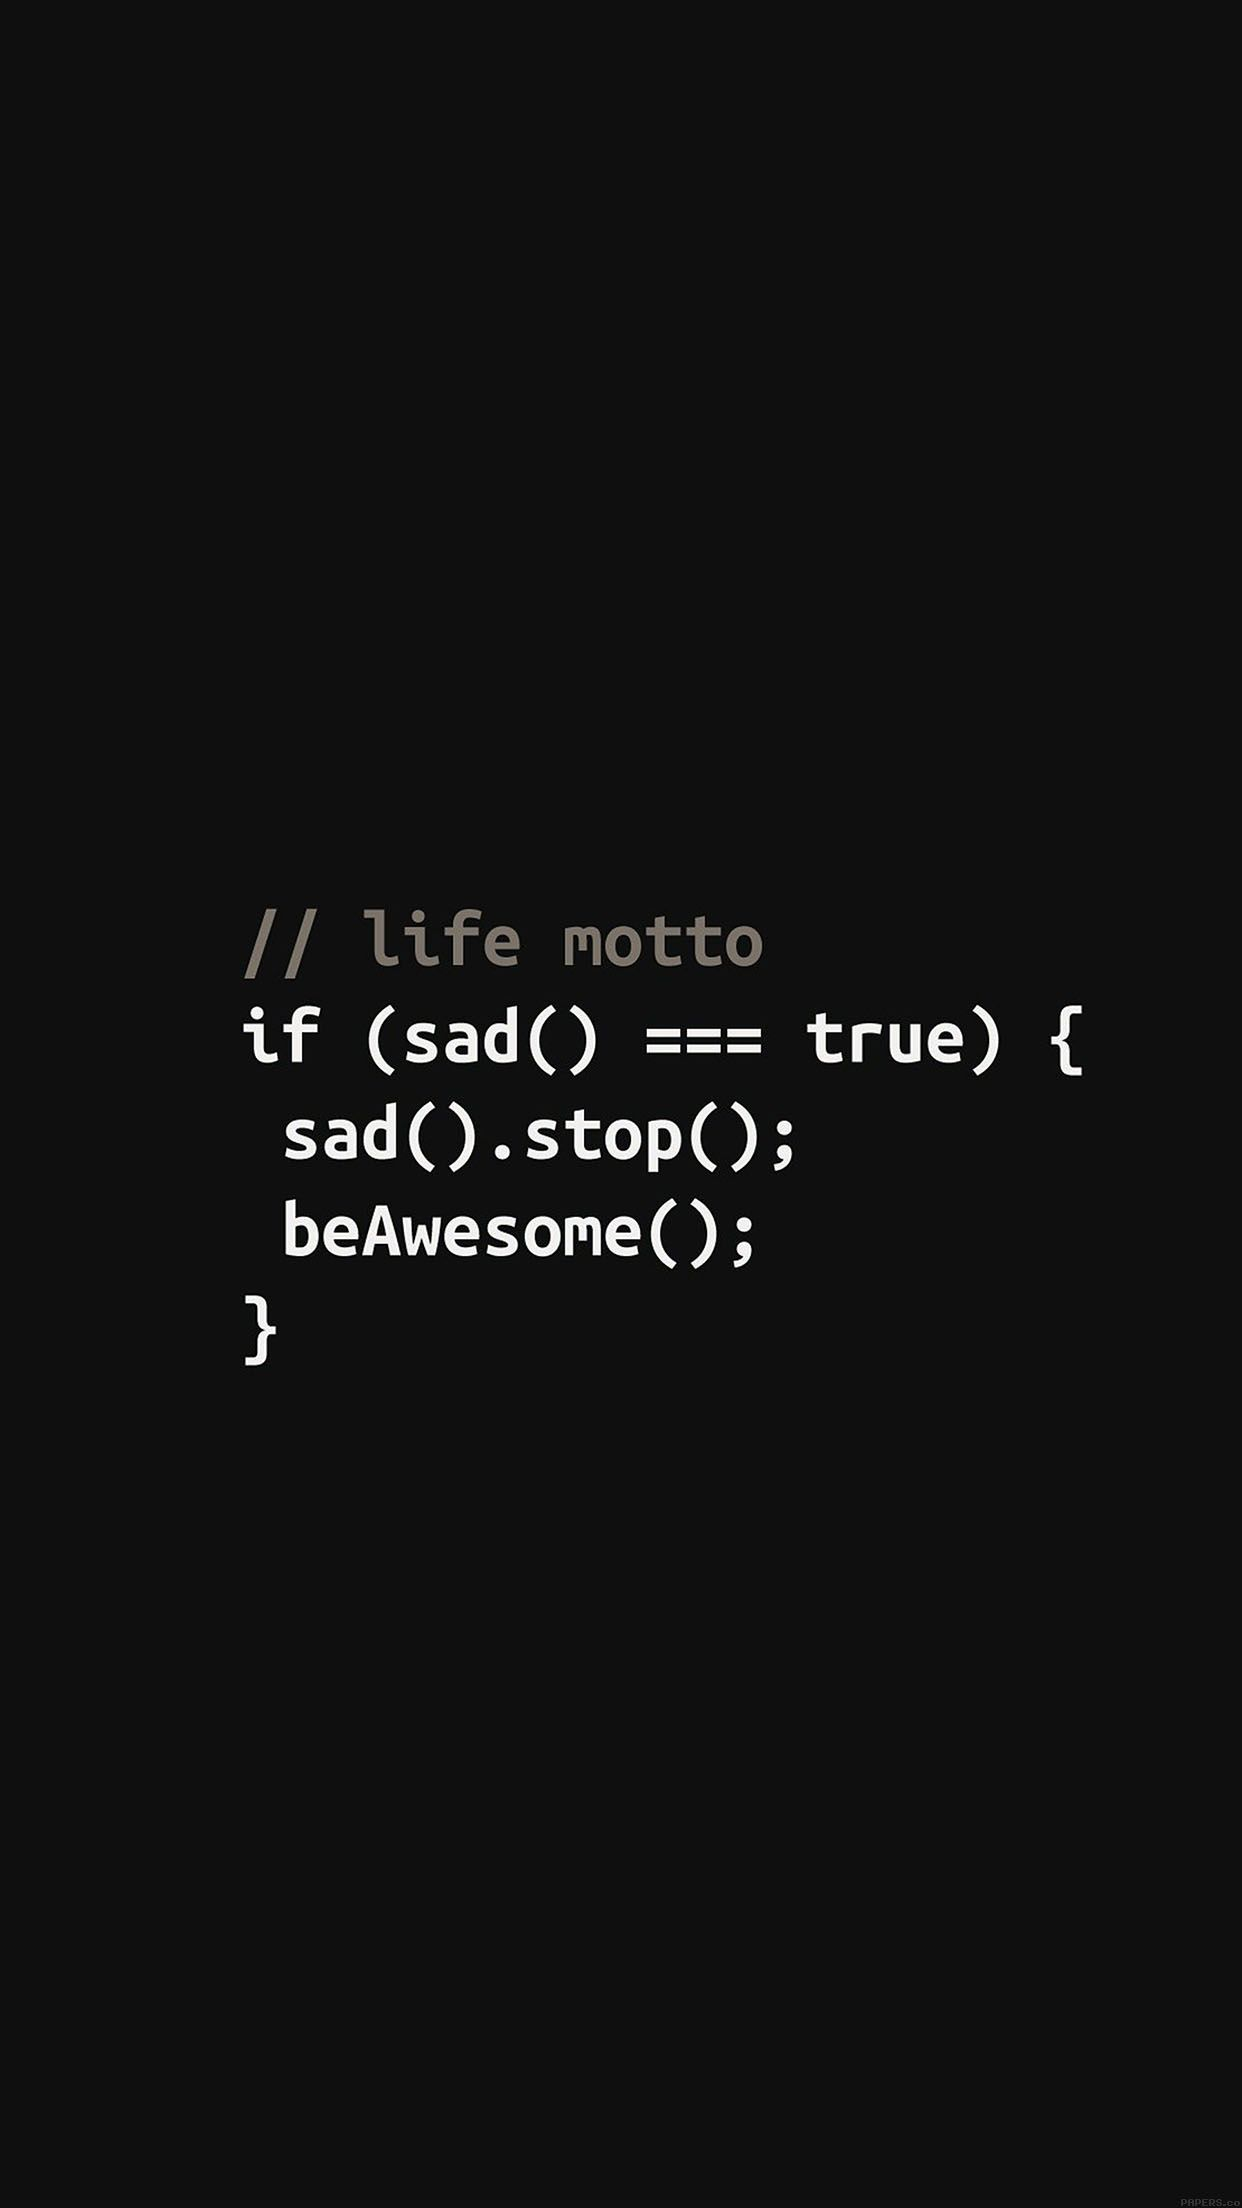 Wallpaper iphone life - Awesome Wallpaper Programmers Life Motto Iphone6 Plus Wallpaper